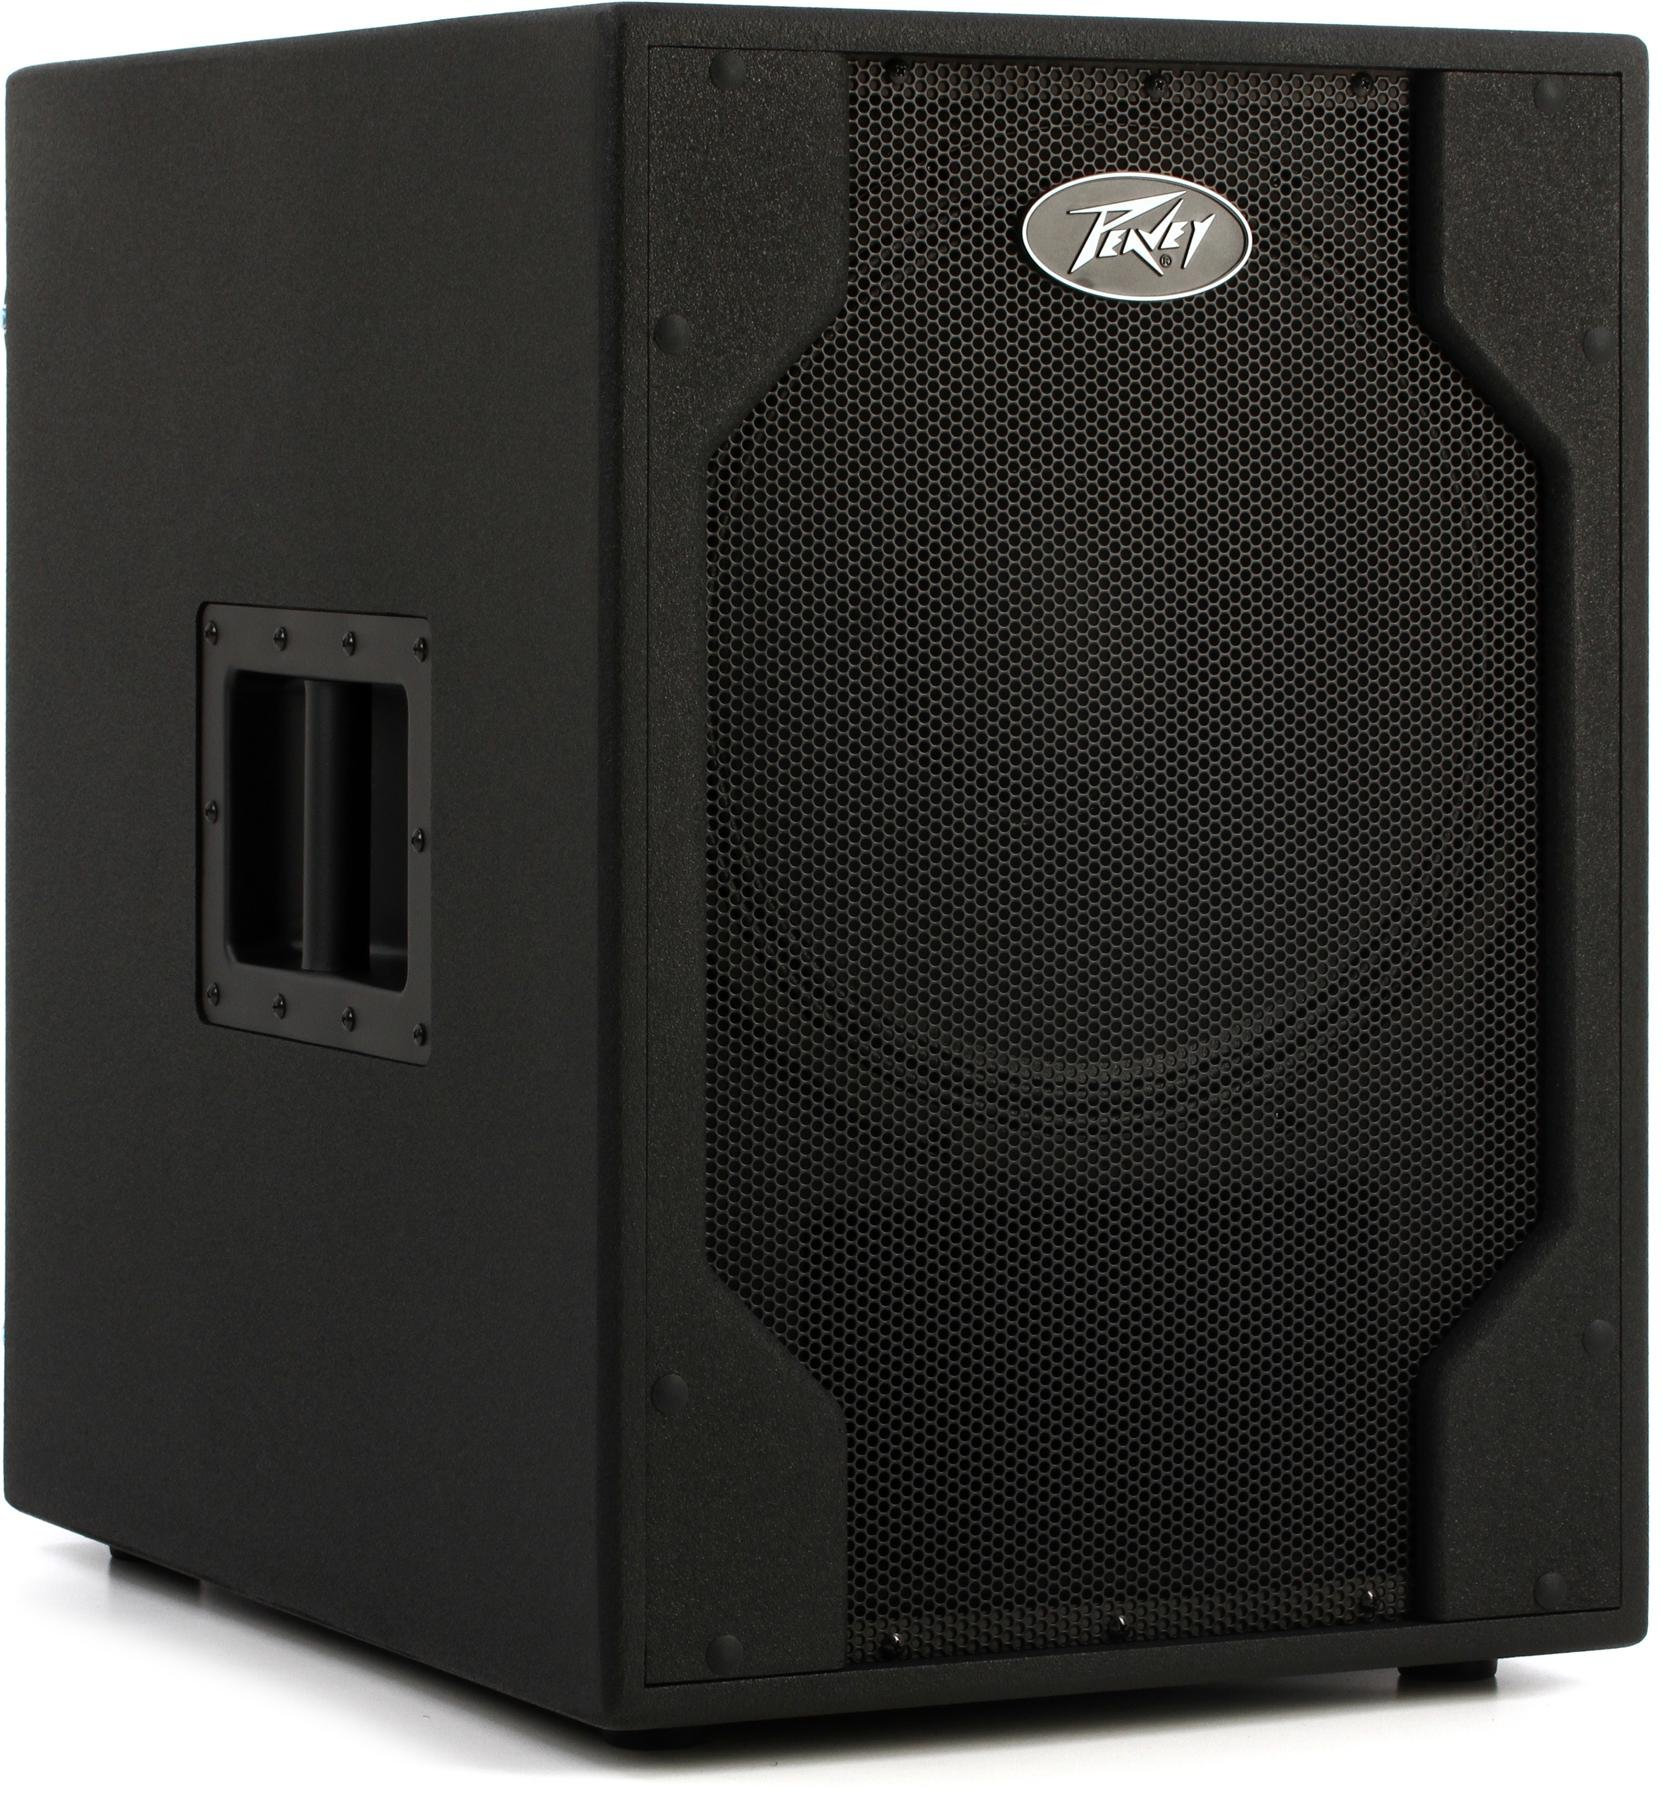 Peavey Pvxp 800w 15 Powered Subwoofer Sweetwater Wiring Diagram Free Picture Image 1